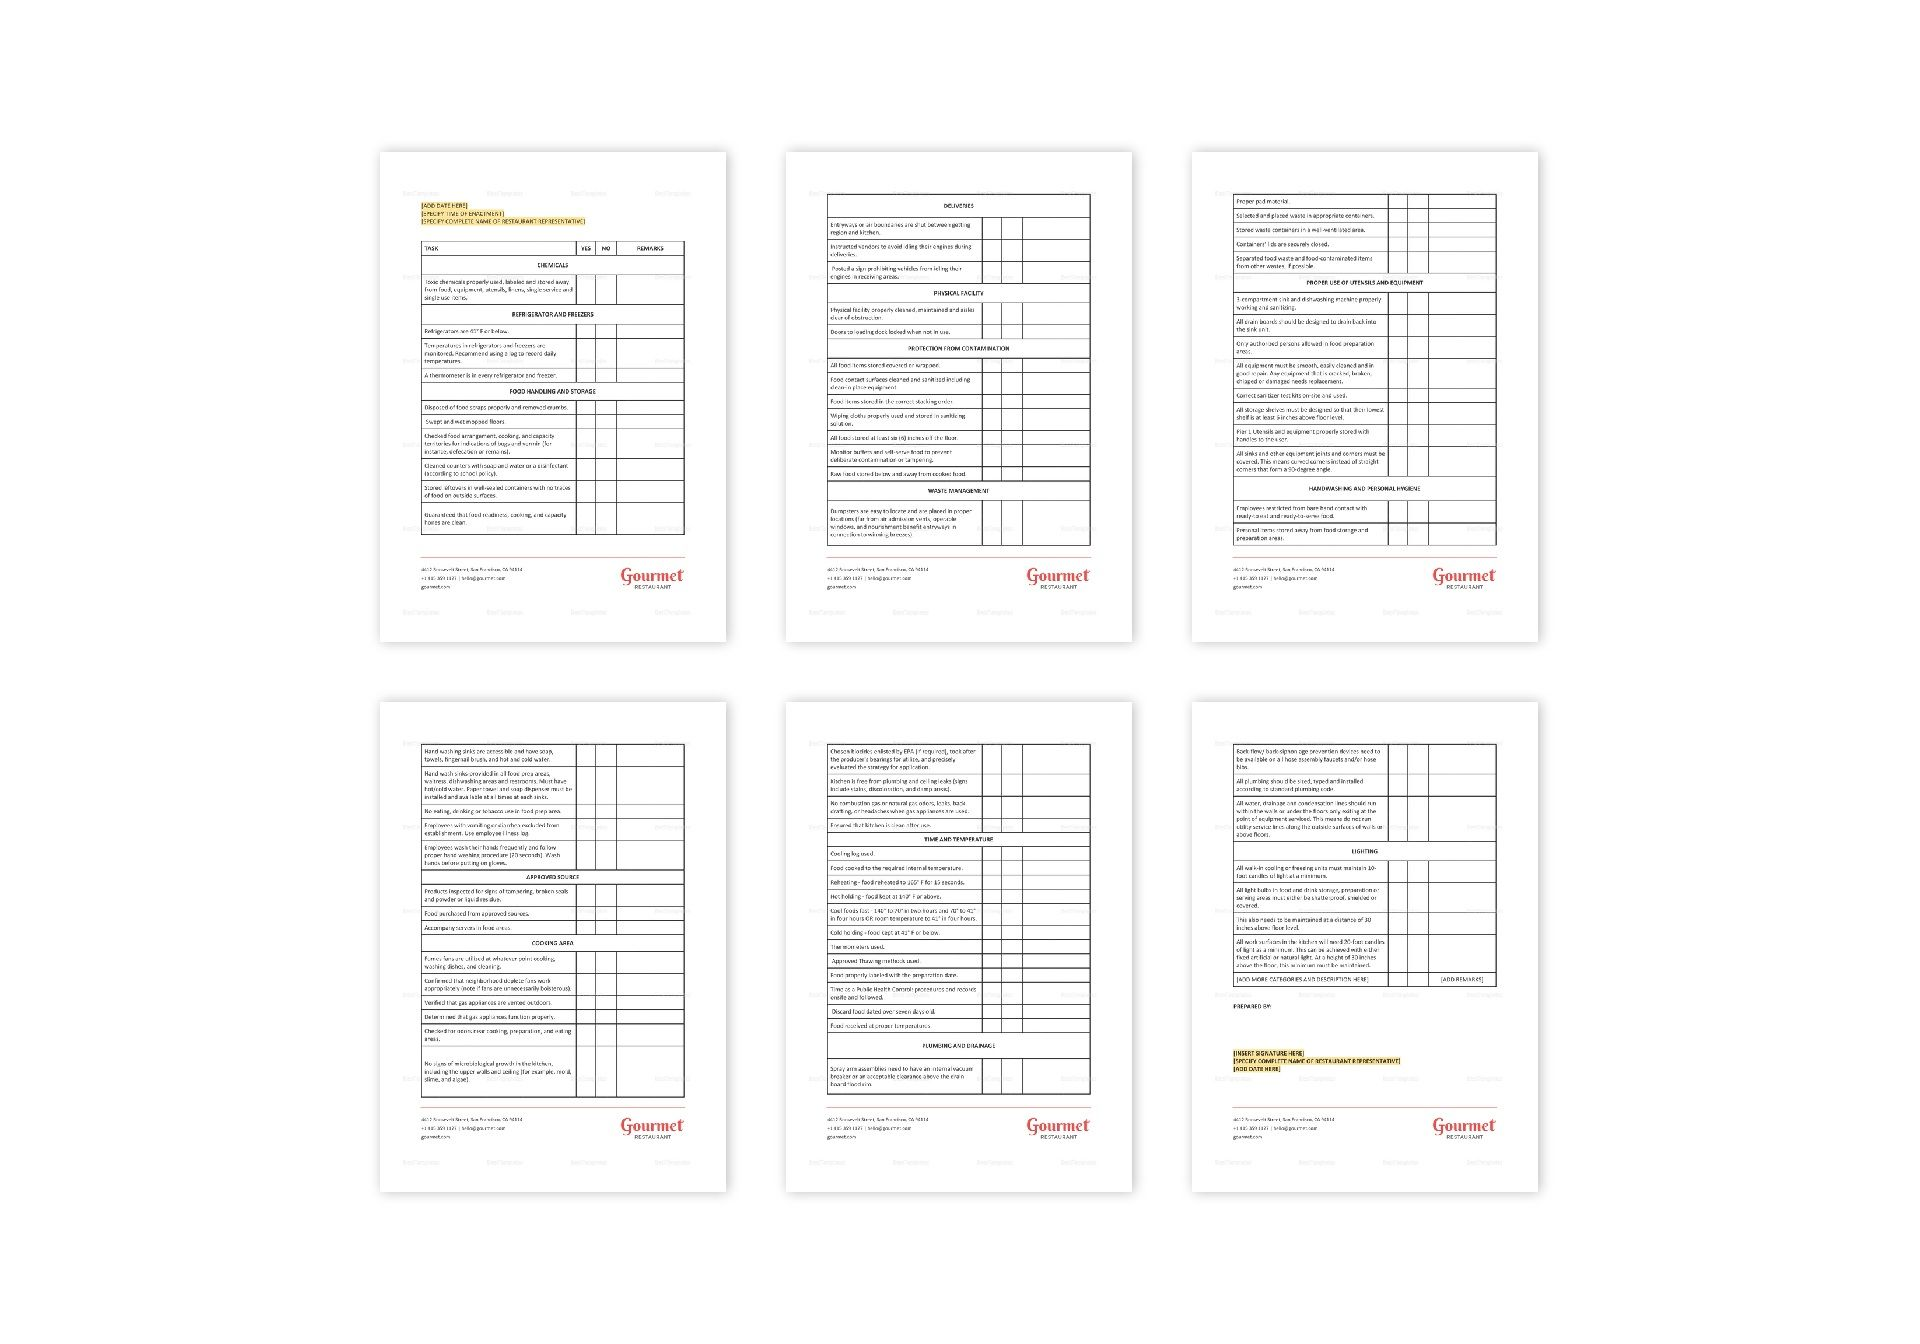 Restaurant Food Service Checklist Template in MS Word, Pages